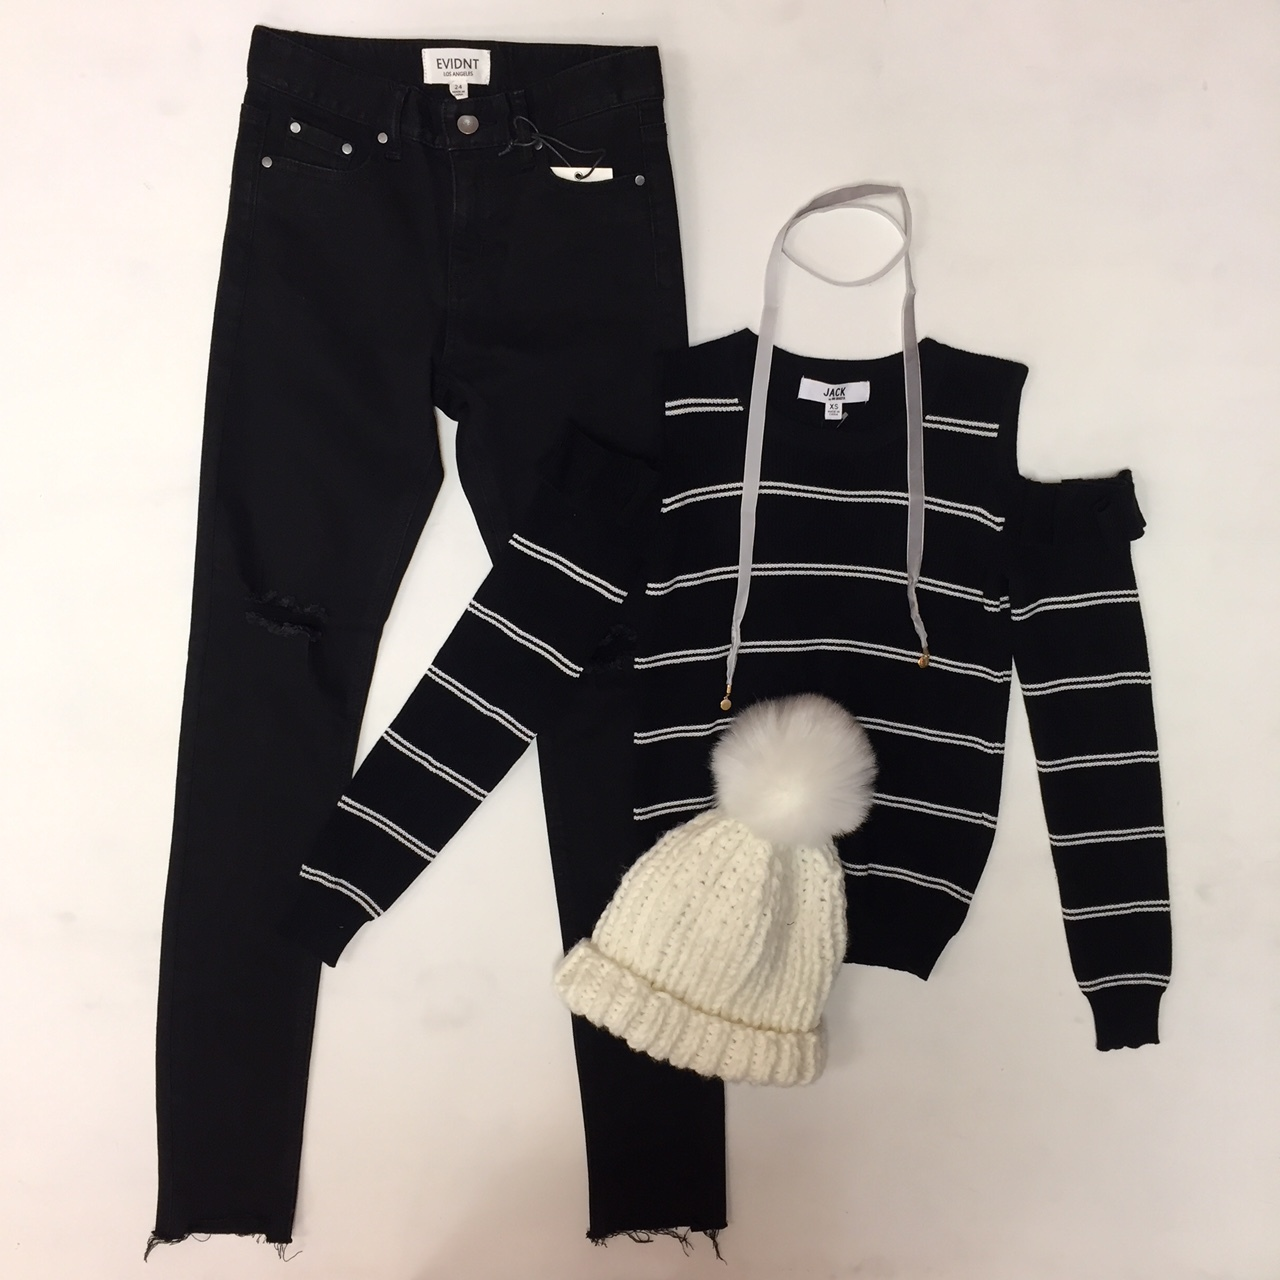 Evident Jeans $62, Cold Shoulder Sweater $70, Free People Hat $48, Choker $12